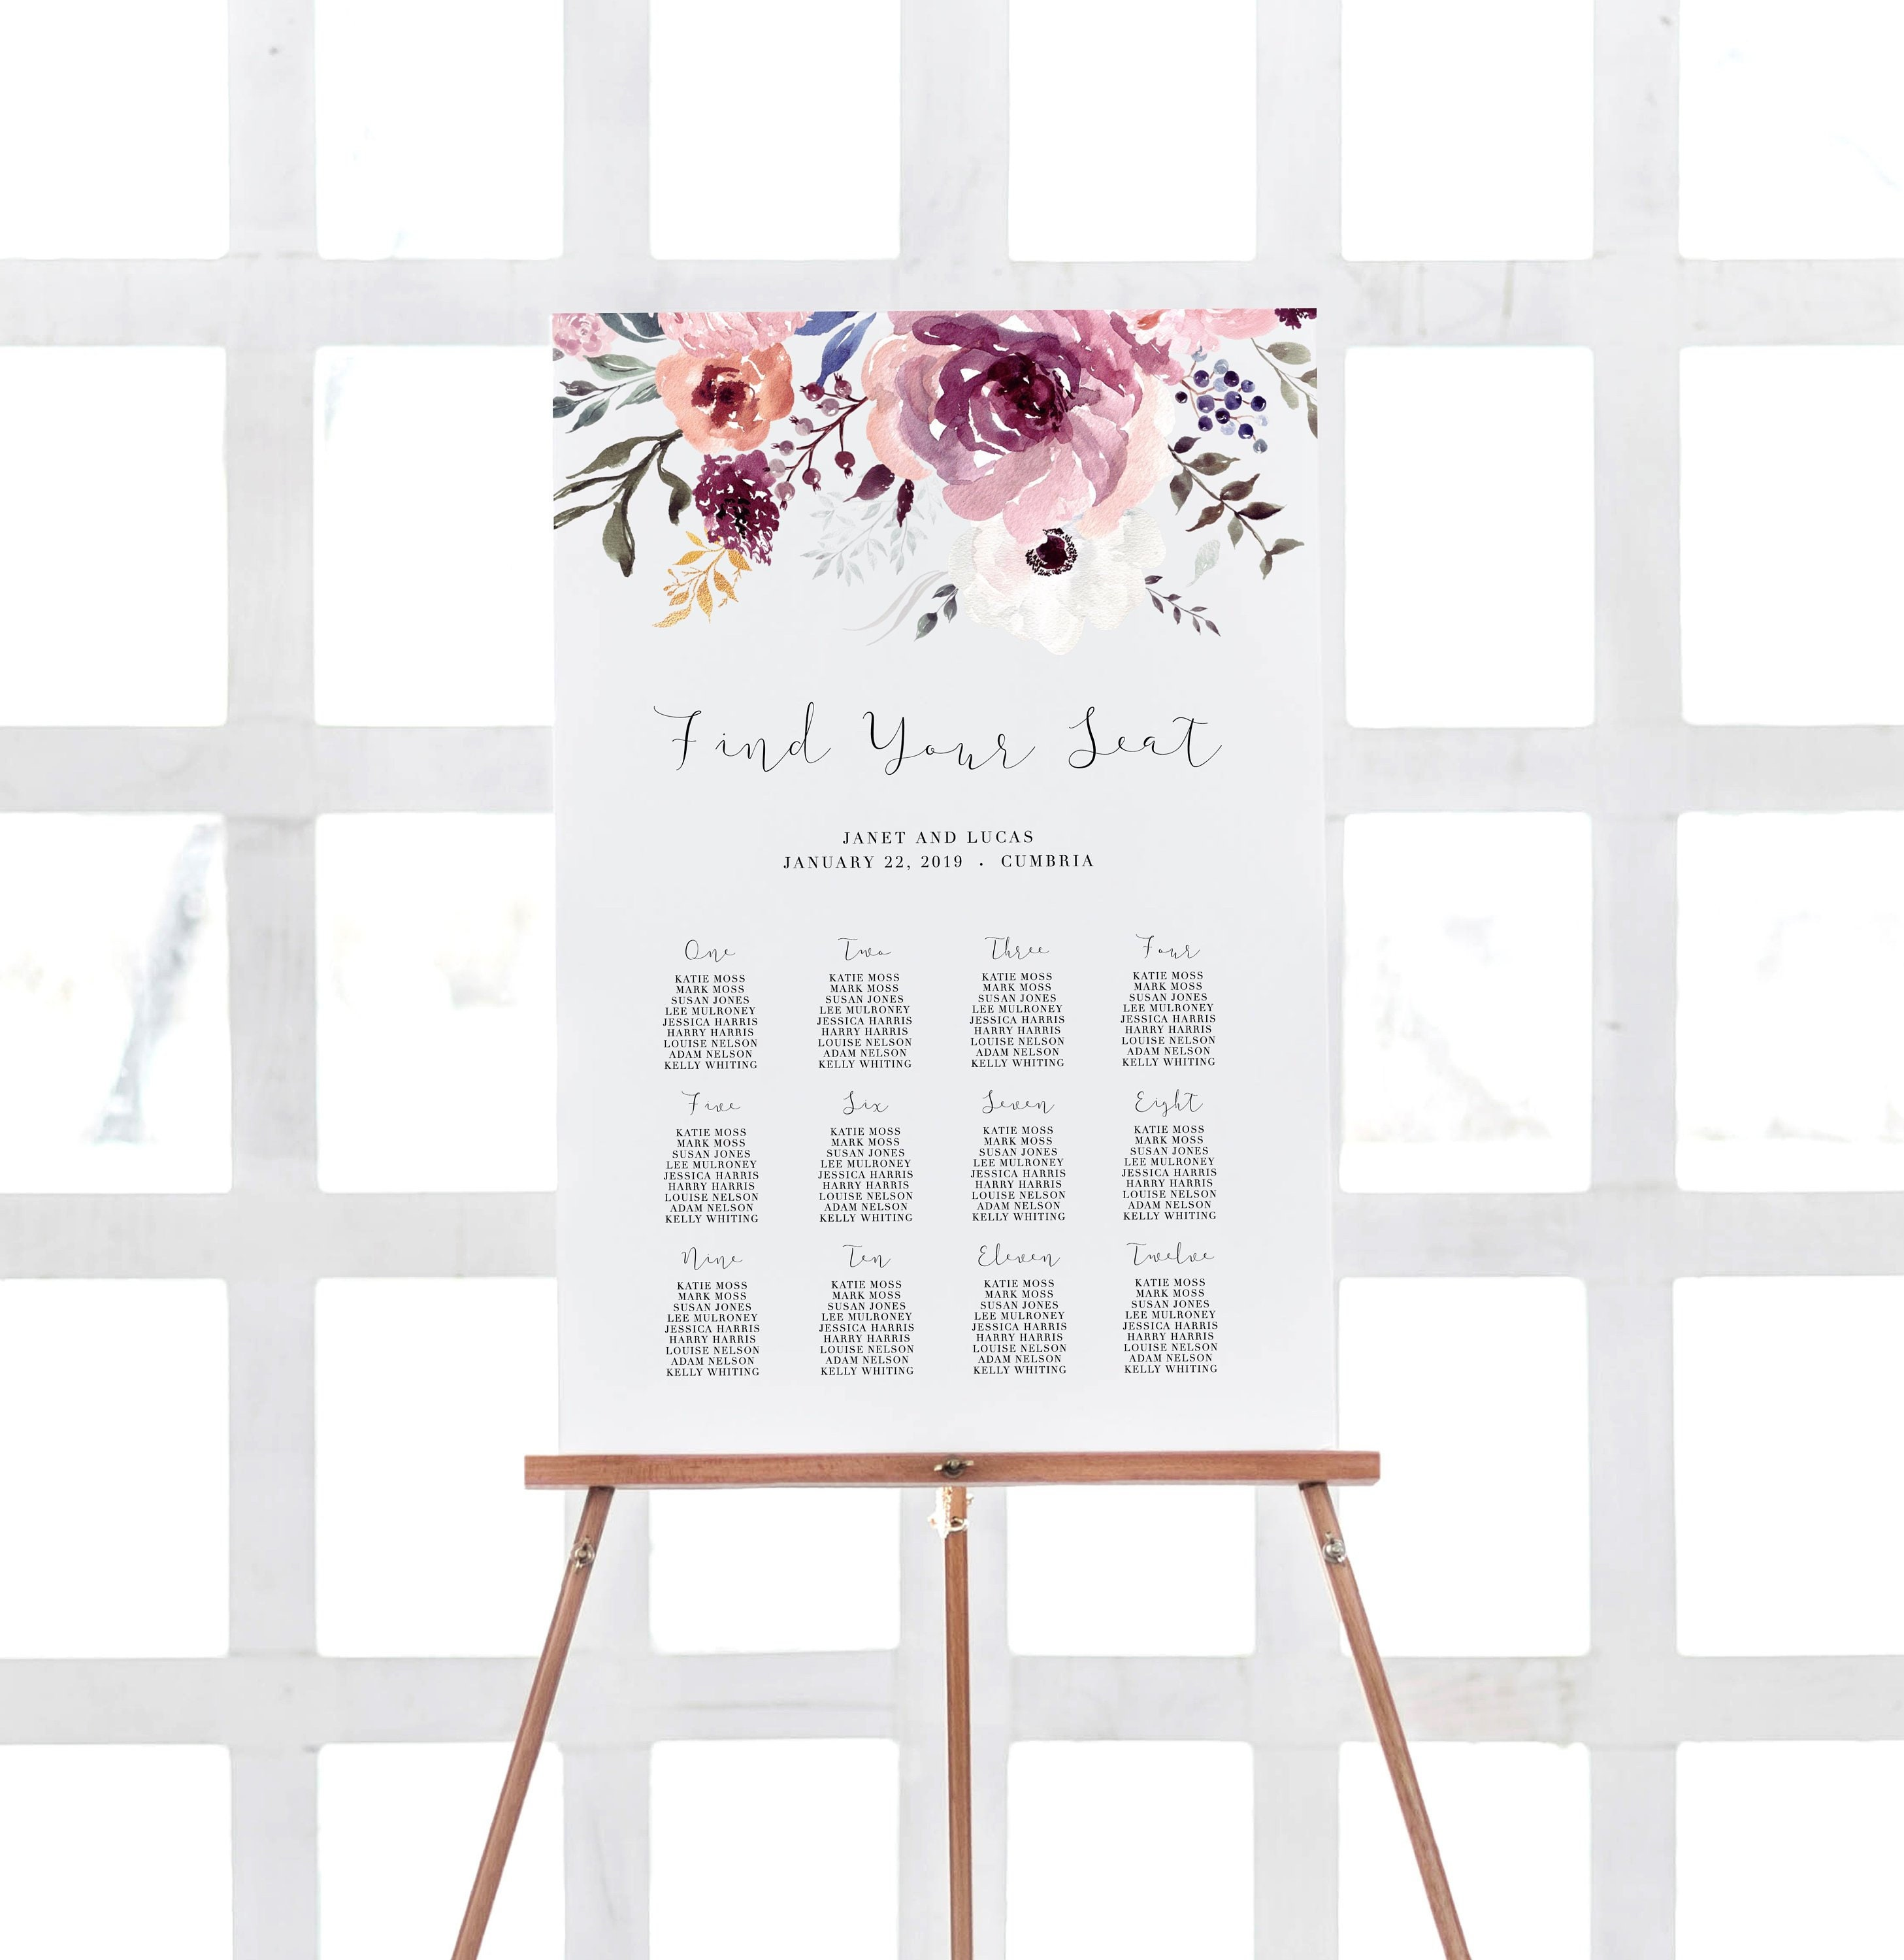 Floral Seating Chart Floral Table Plan Purple Floral Seating Plan Seating Template Wedding Seating Plan Printable Seating Chart Sign 101 008